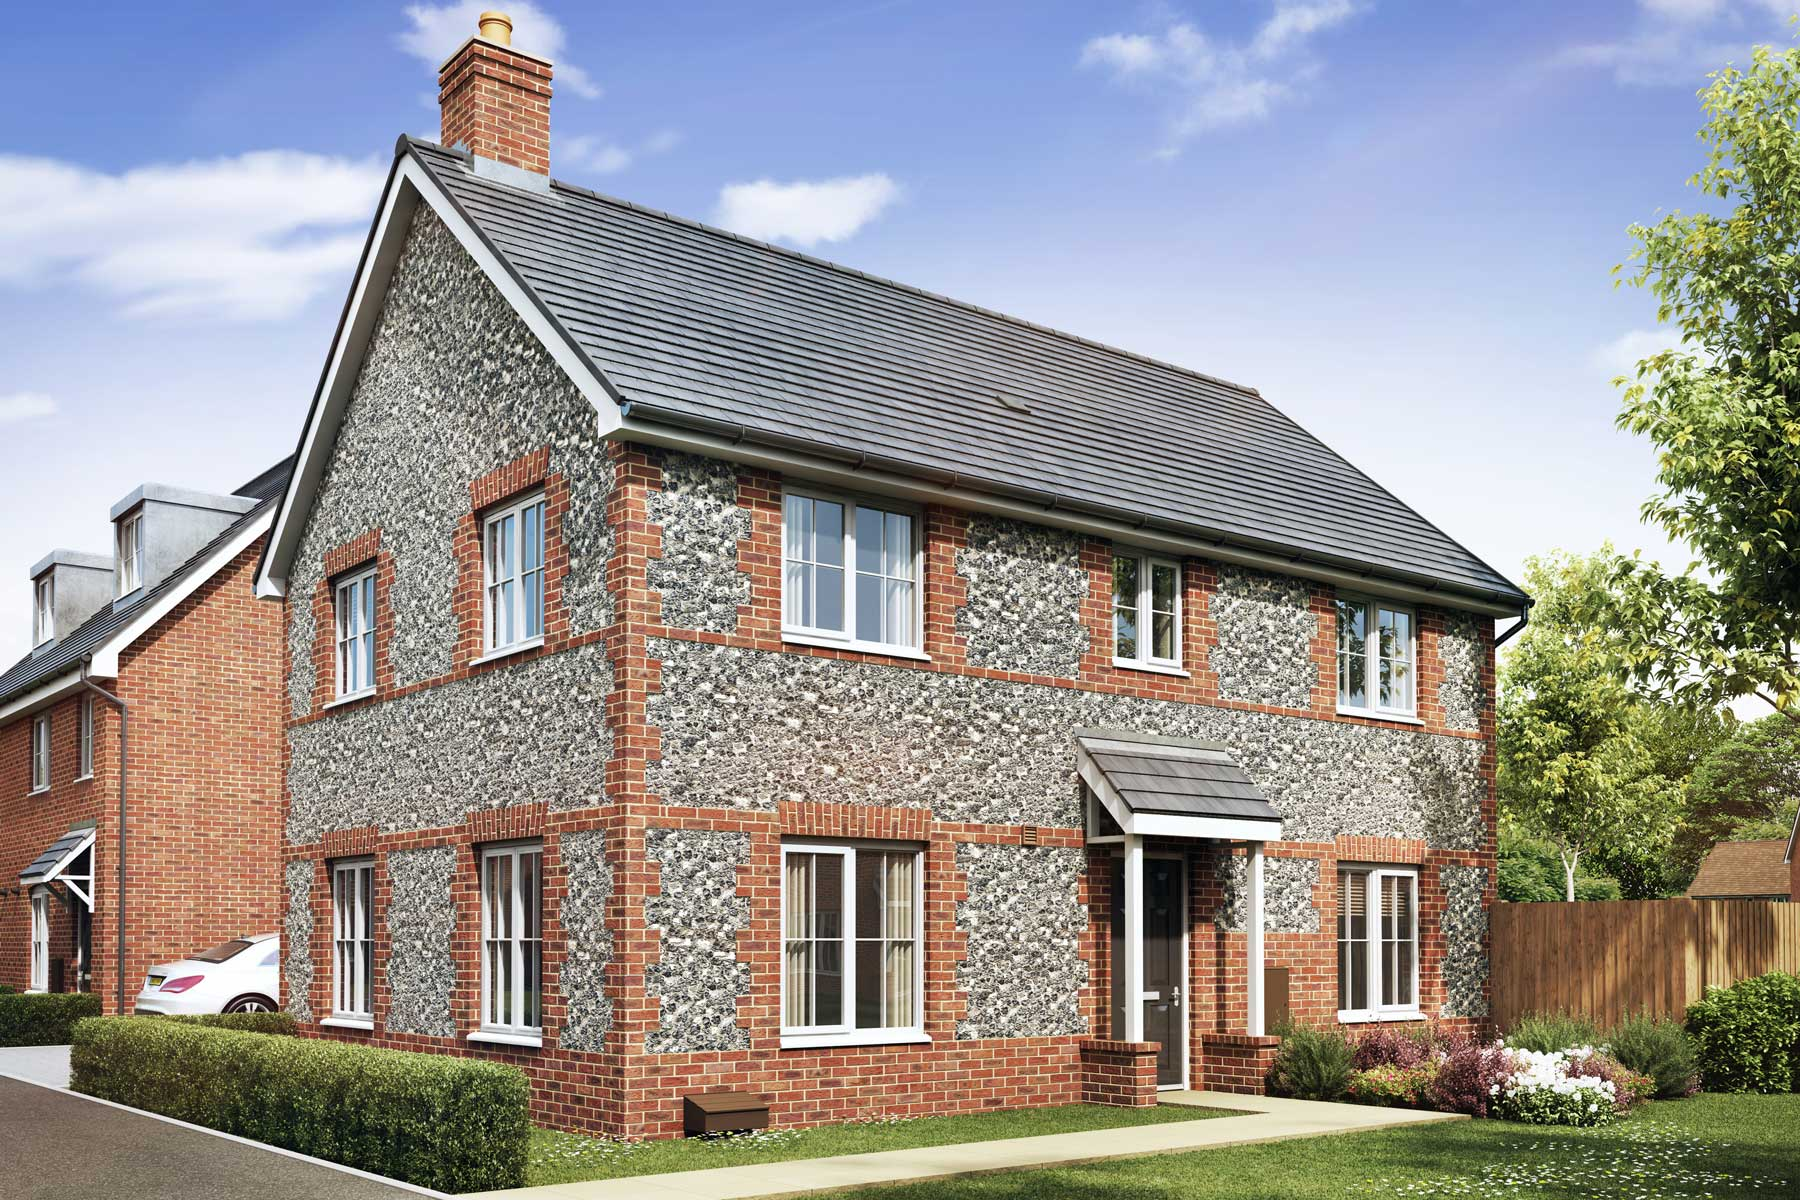 Artist's impression of a typical Kentdale home